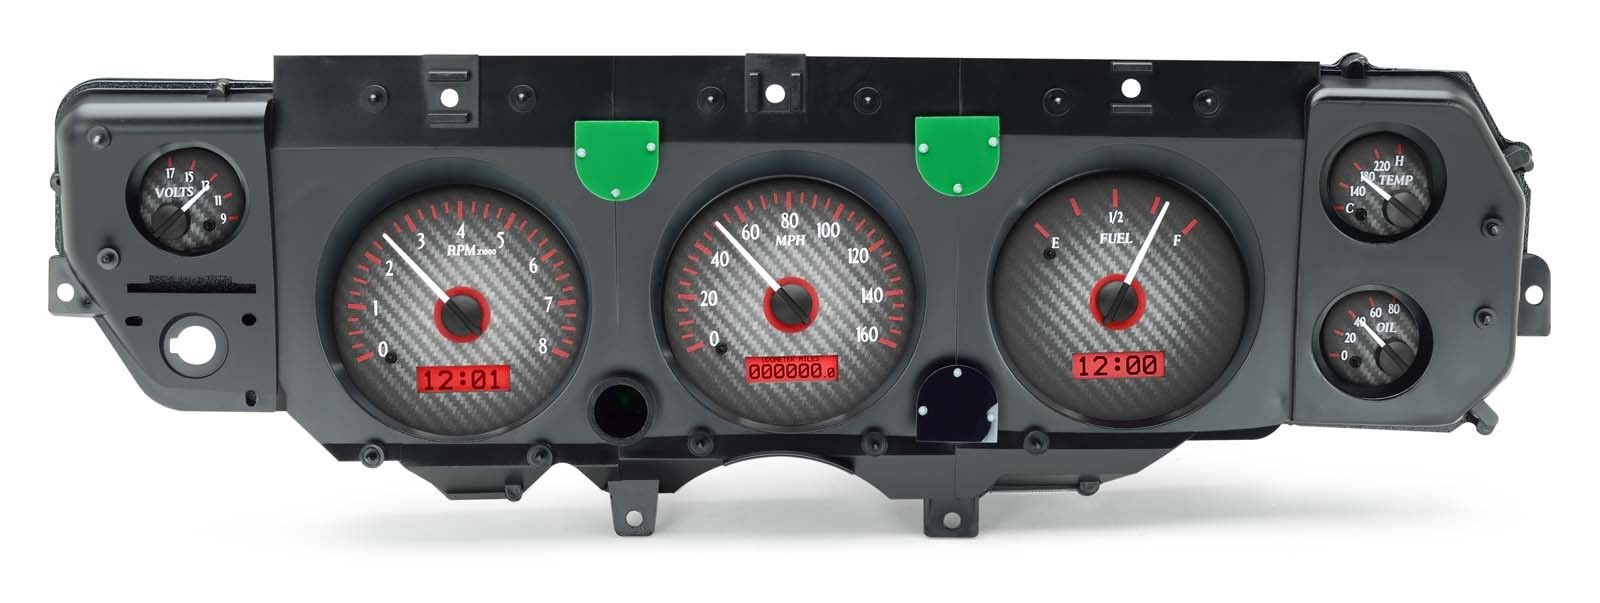 70 72 Ss Dash Conversion Kits From Sweep Style To Round Ls Wiring Harness Radio Kit With Dakota Vhx Gauges